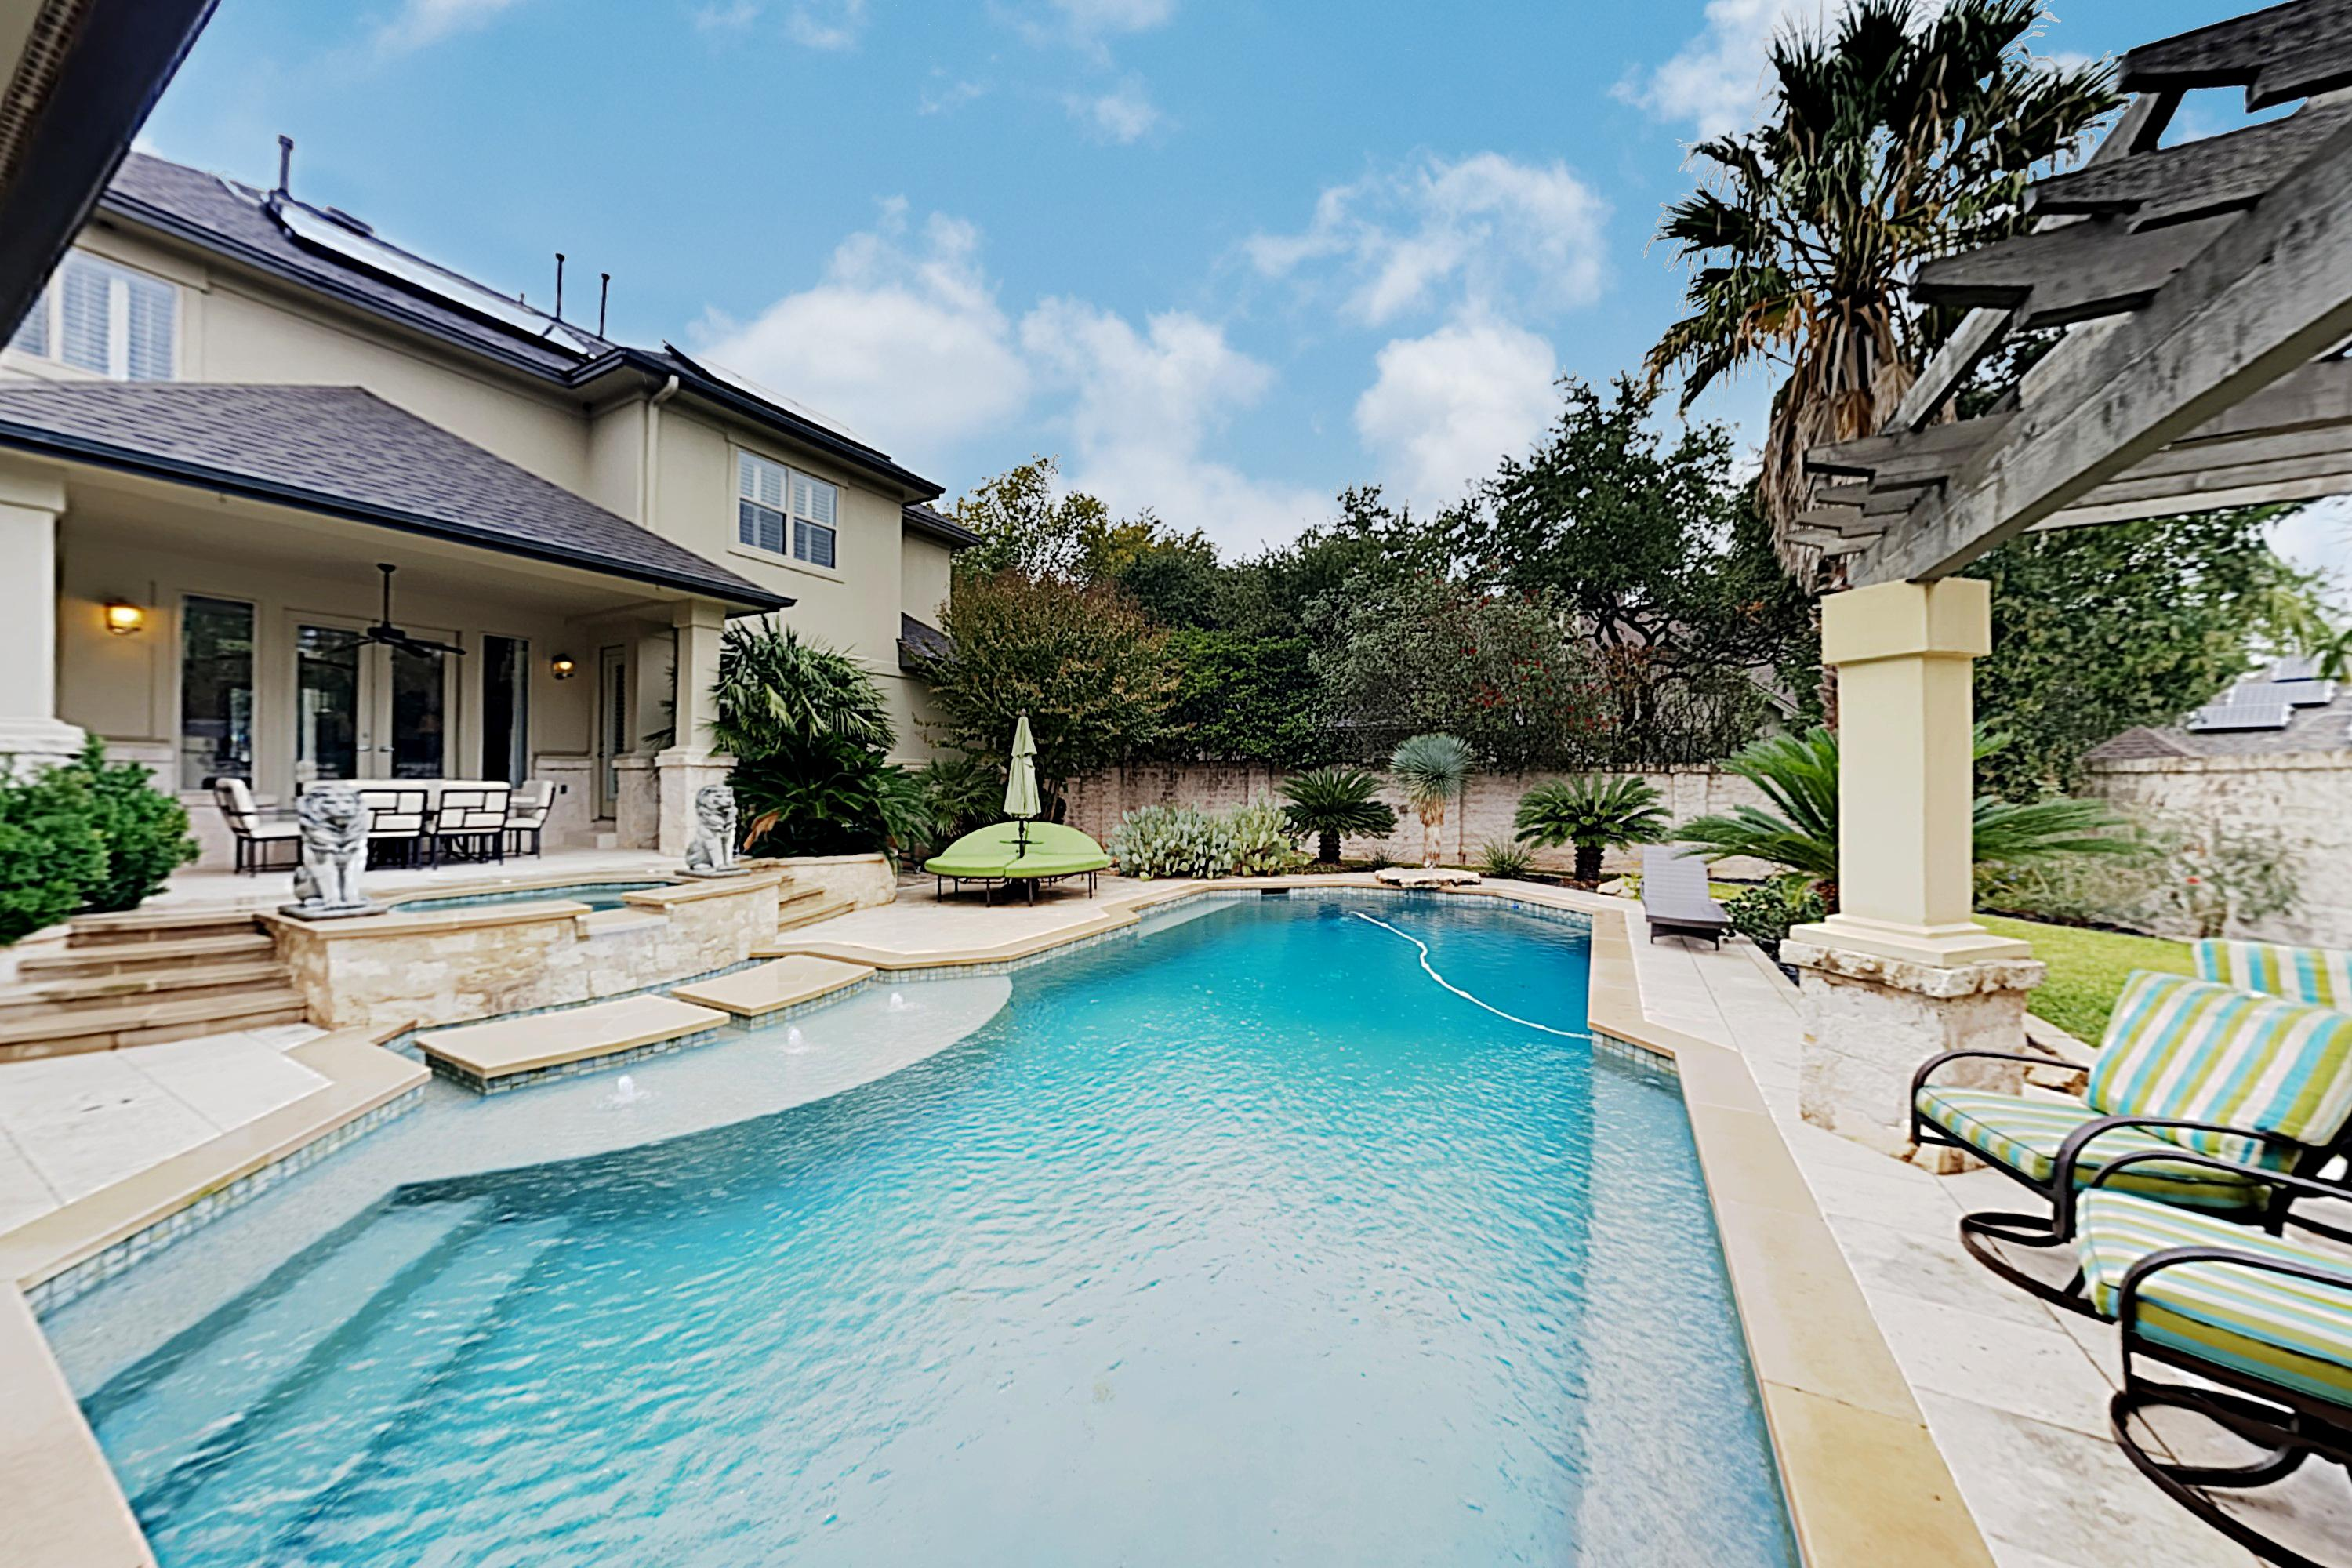 Welcome to Austin! This incredible home is professionally managed by TurnKey Vacation Rentals.